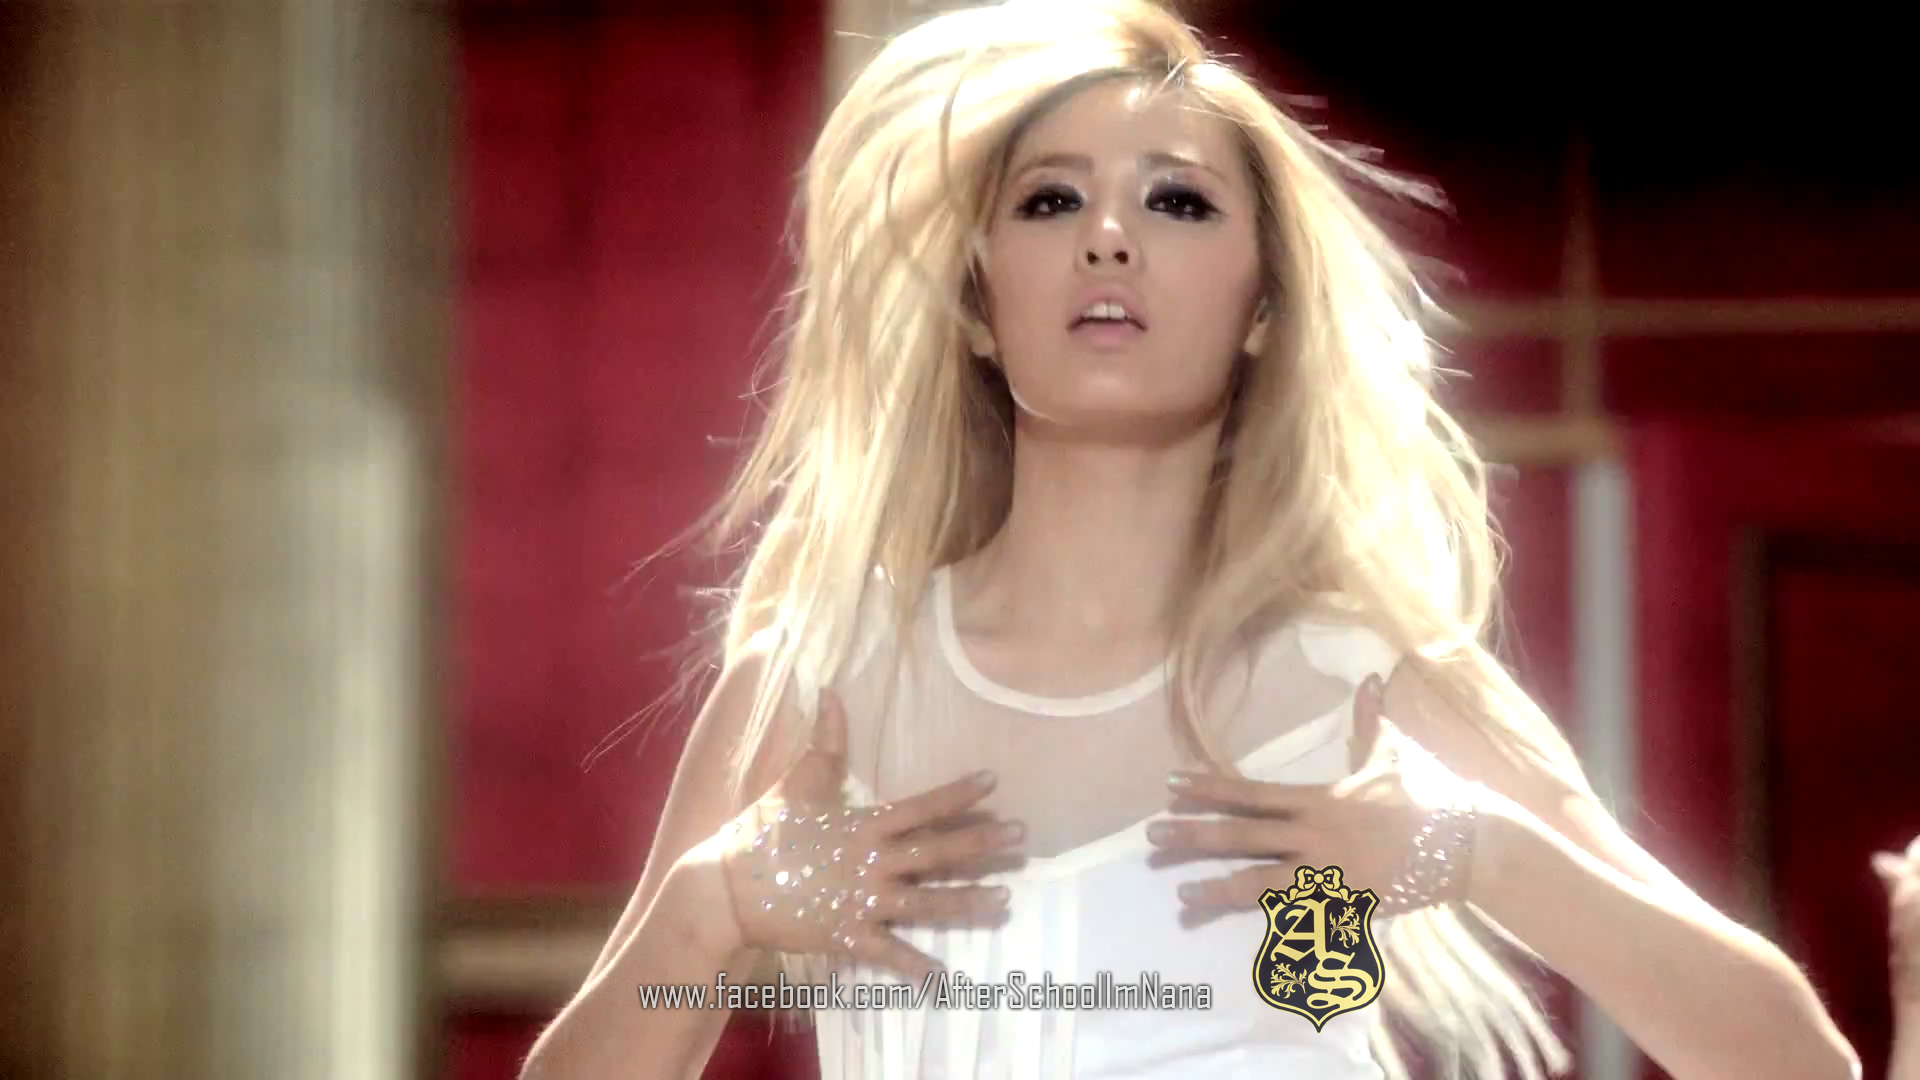 Flashback MV screenshots After School Nana 1920x1080